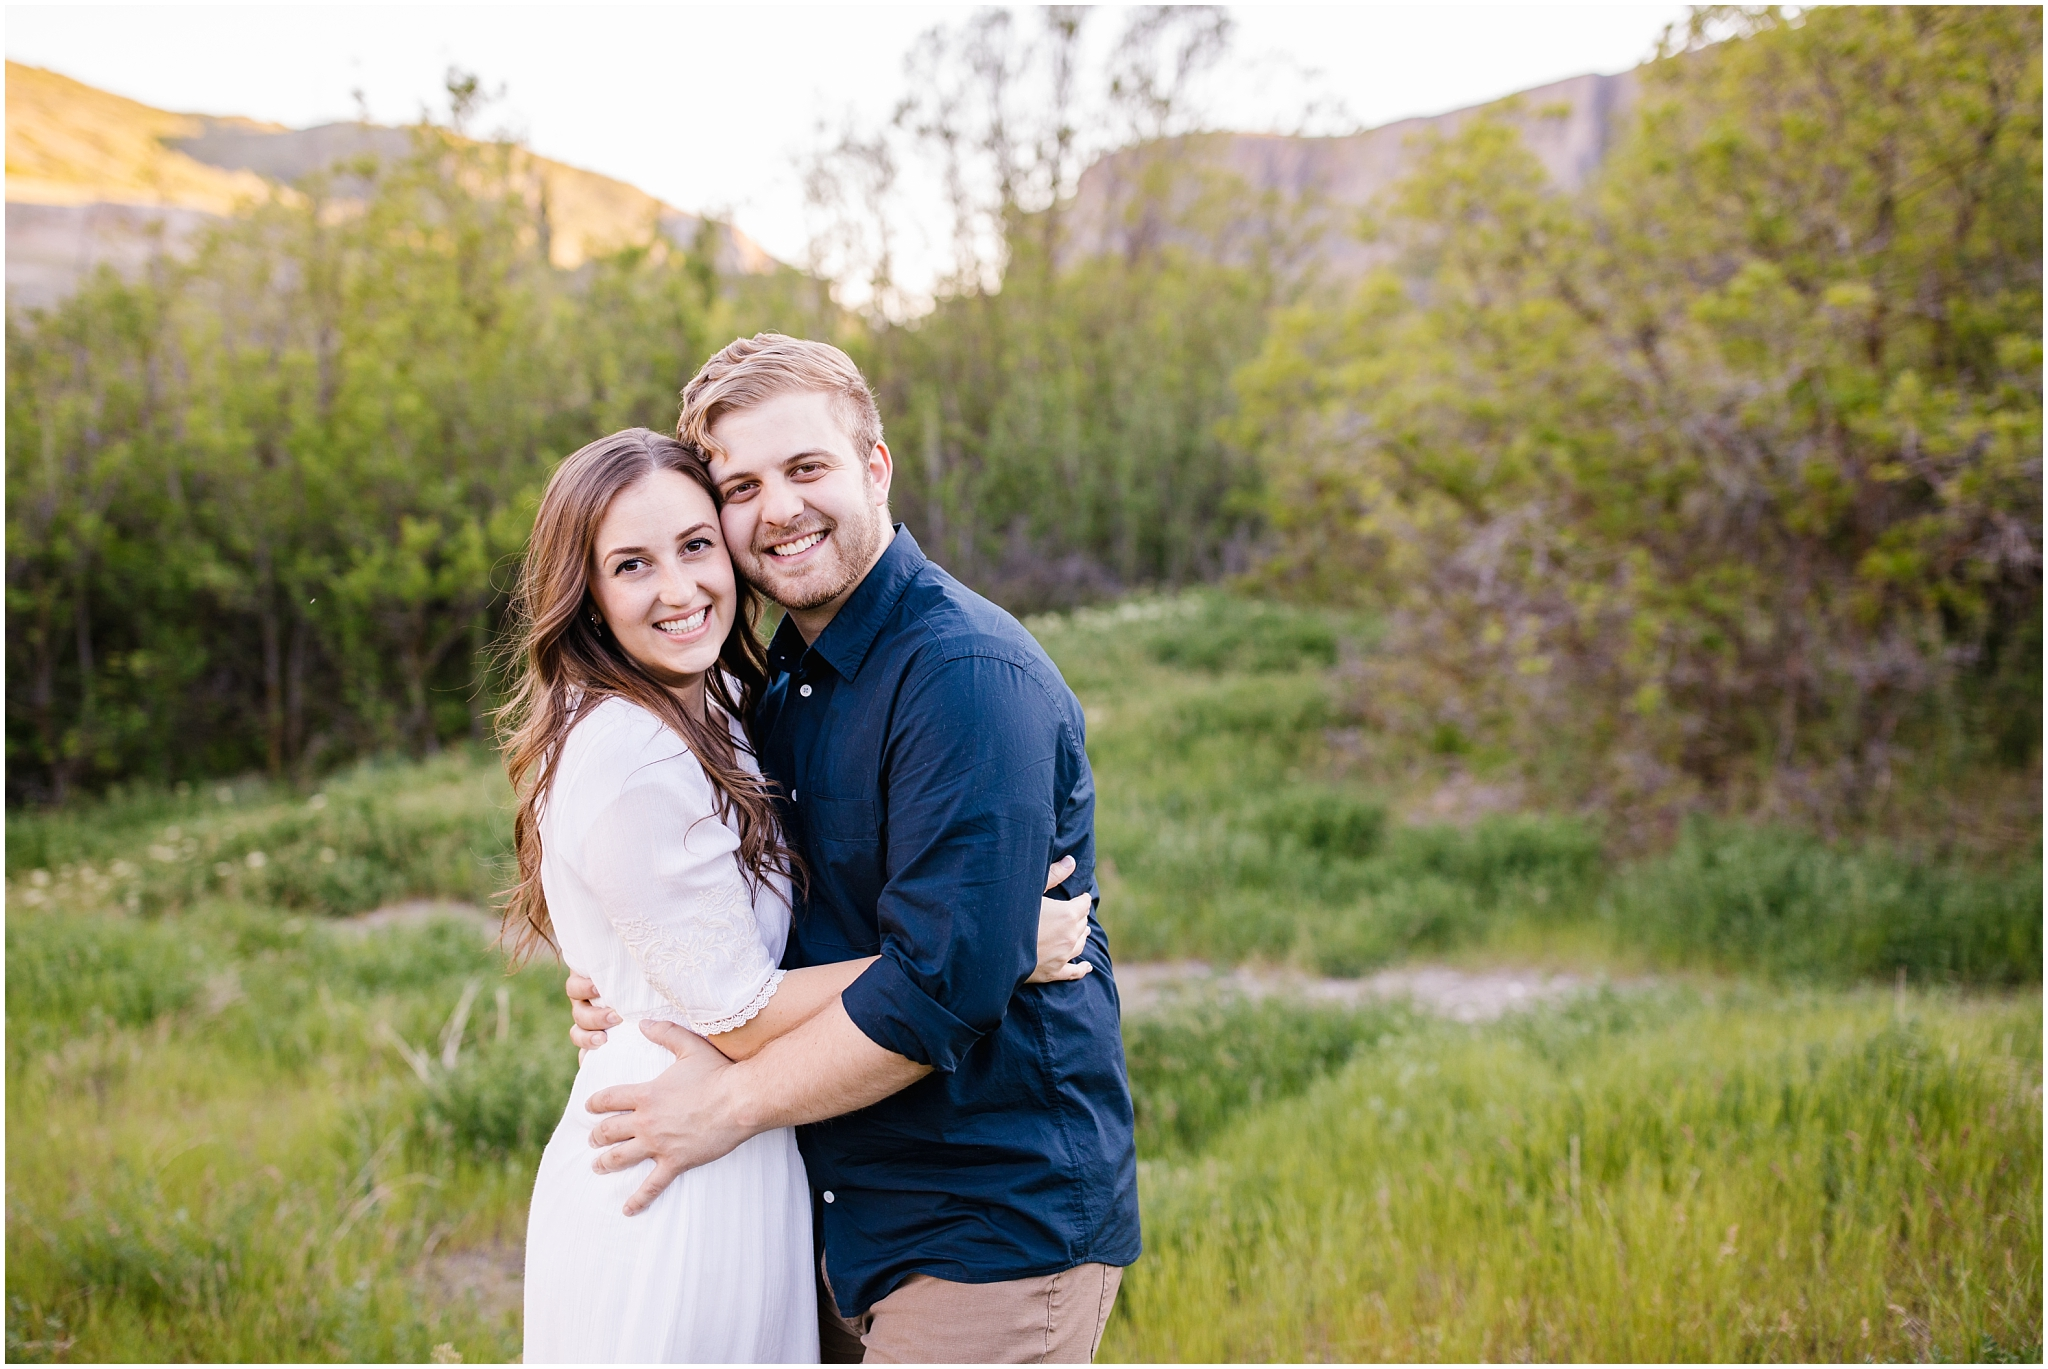 Lizzie-B-Imagery-Utah-Wedding-Photographer-Thanksgiving-Point-Payson-Temple_0146.jpg